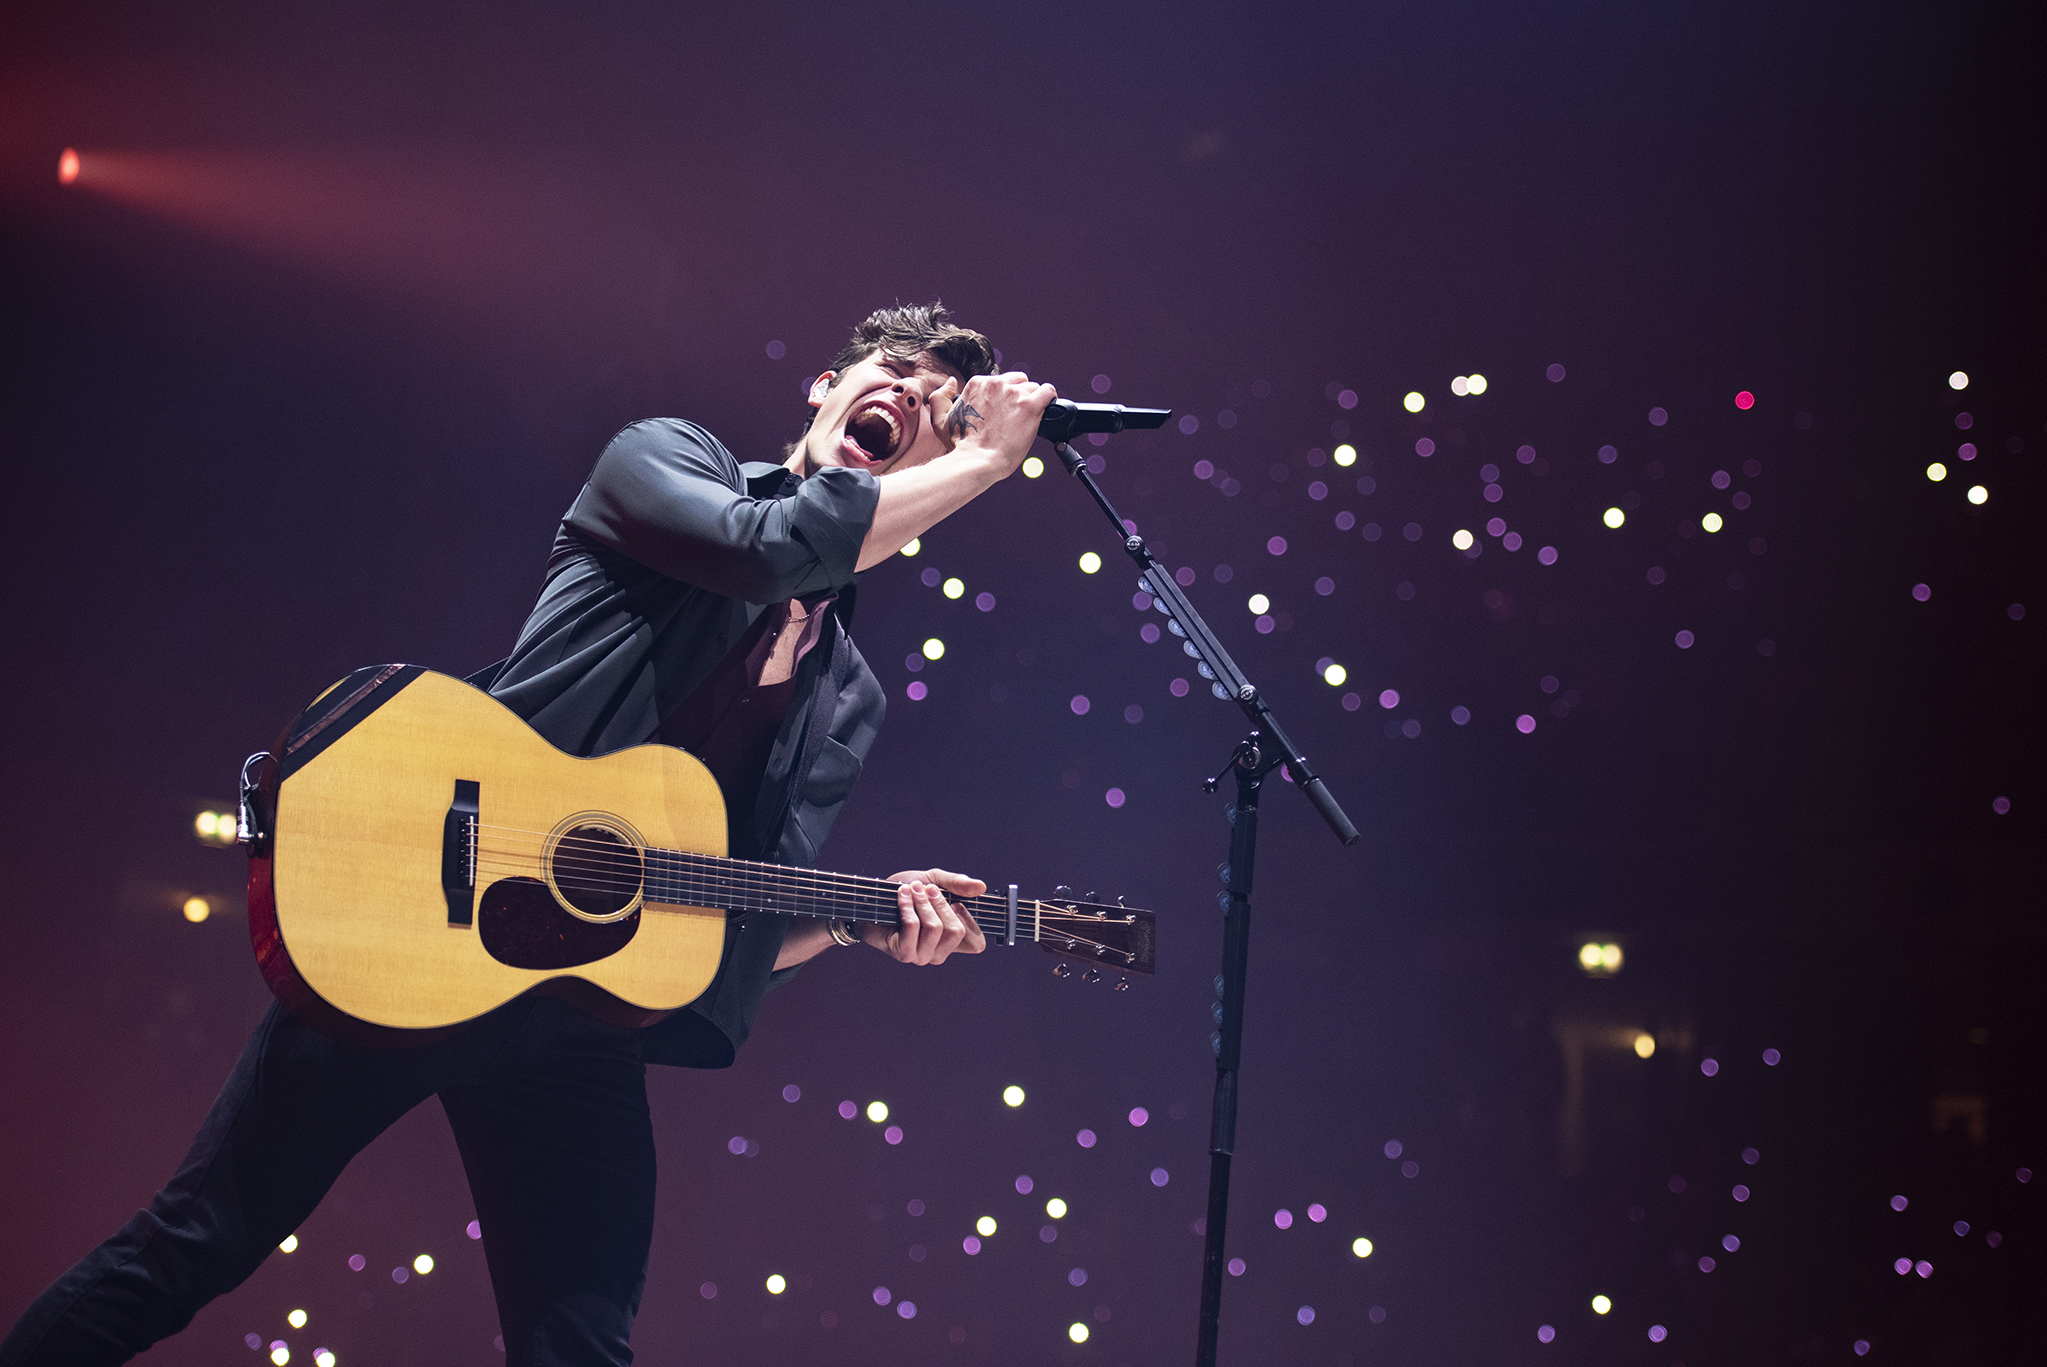 shawn mendes - @ Manchester Arena, 07.04.2019